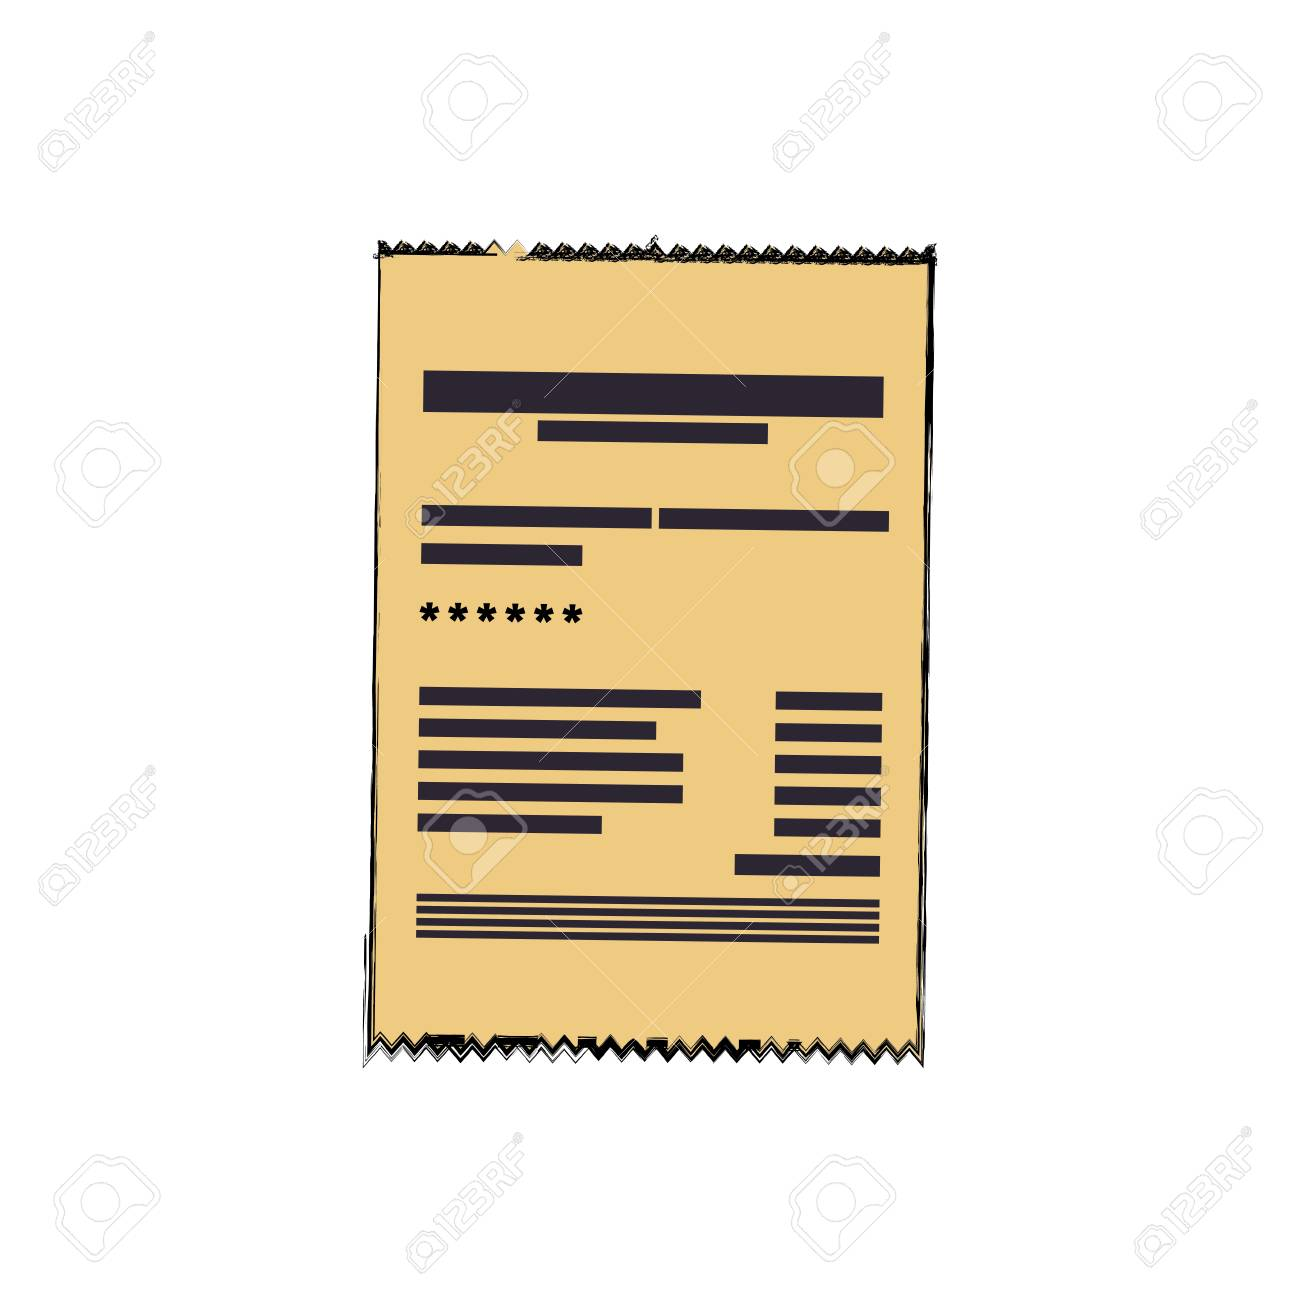 Invoice Sheet Document Icon Vector Illustration Graphic Design ...